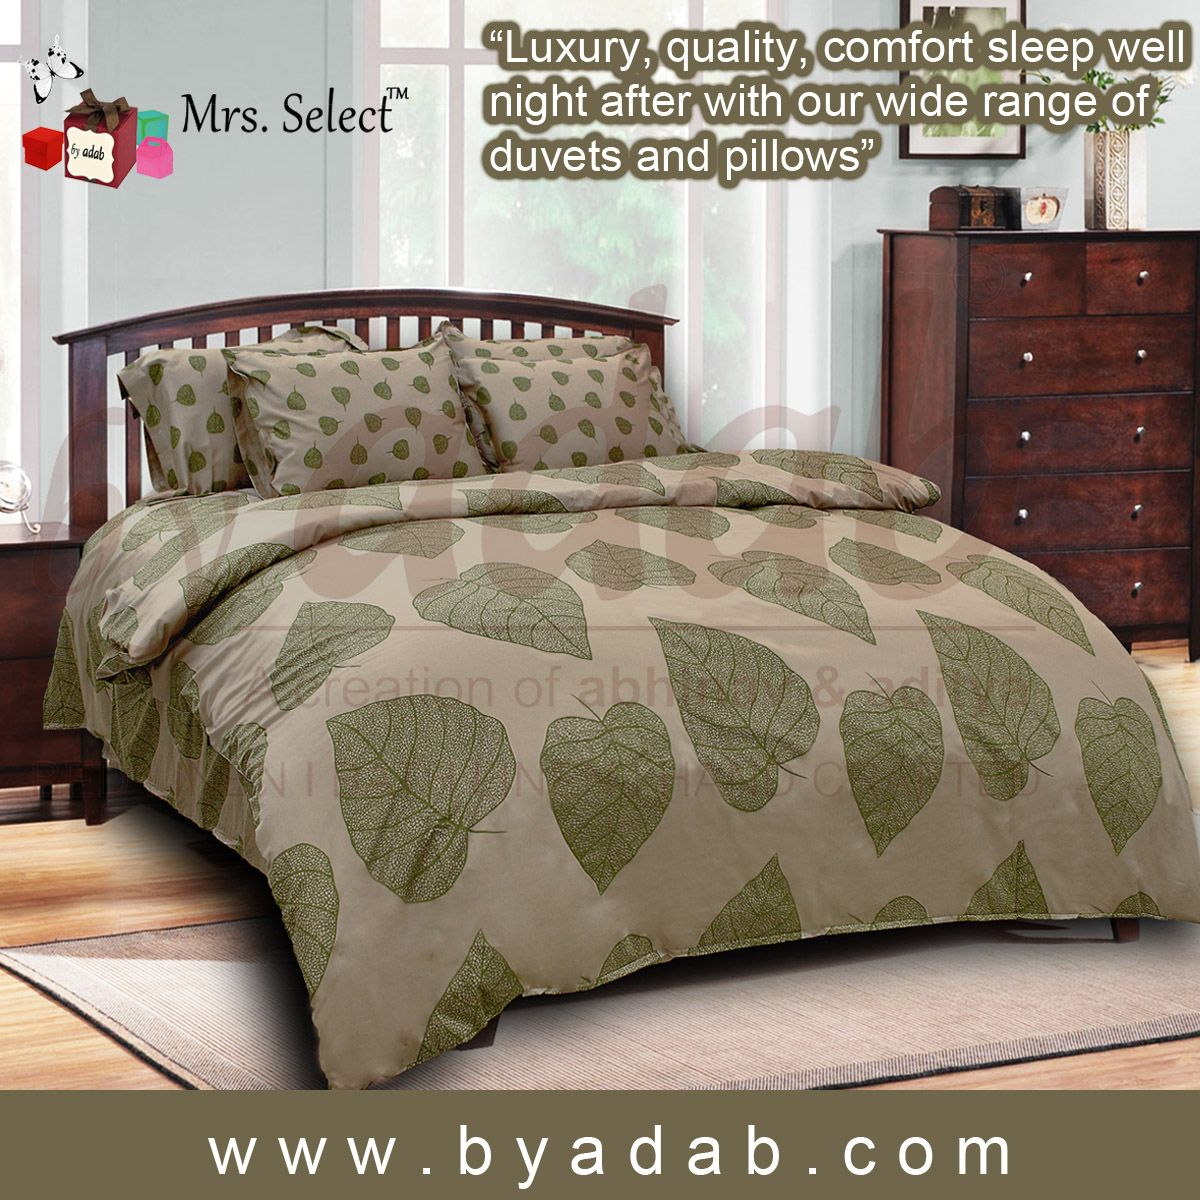 Bon By Adab Proffers An Online Shop For Luxury Bed U0026 Bath Linen Made Of Finest  Quality Egyptian Cotton, Made In India.